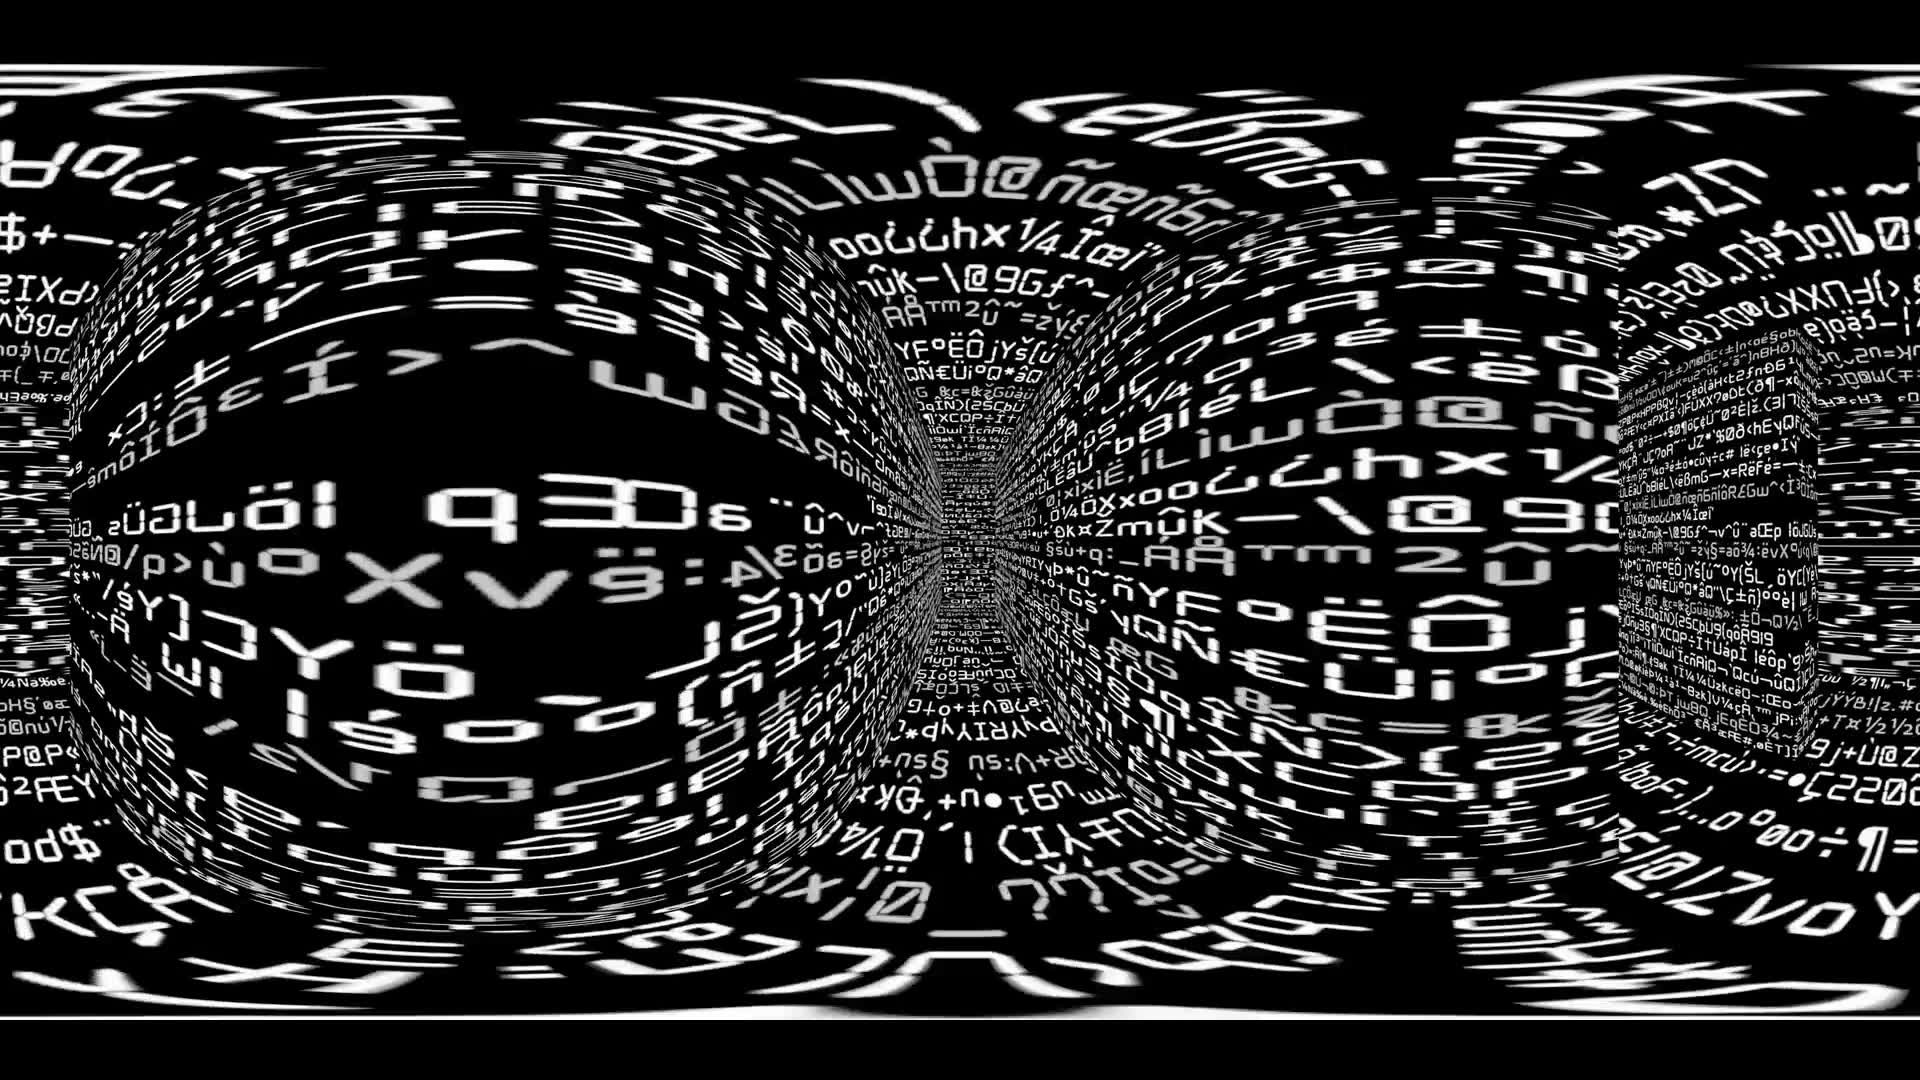 360 VR Maze 003: Virtual reality video inside a maze of streaming computer code (Loop). Designed to be used in Oculus Rift, Samsung Gear VR and other virtual reality displays.